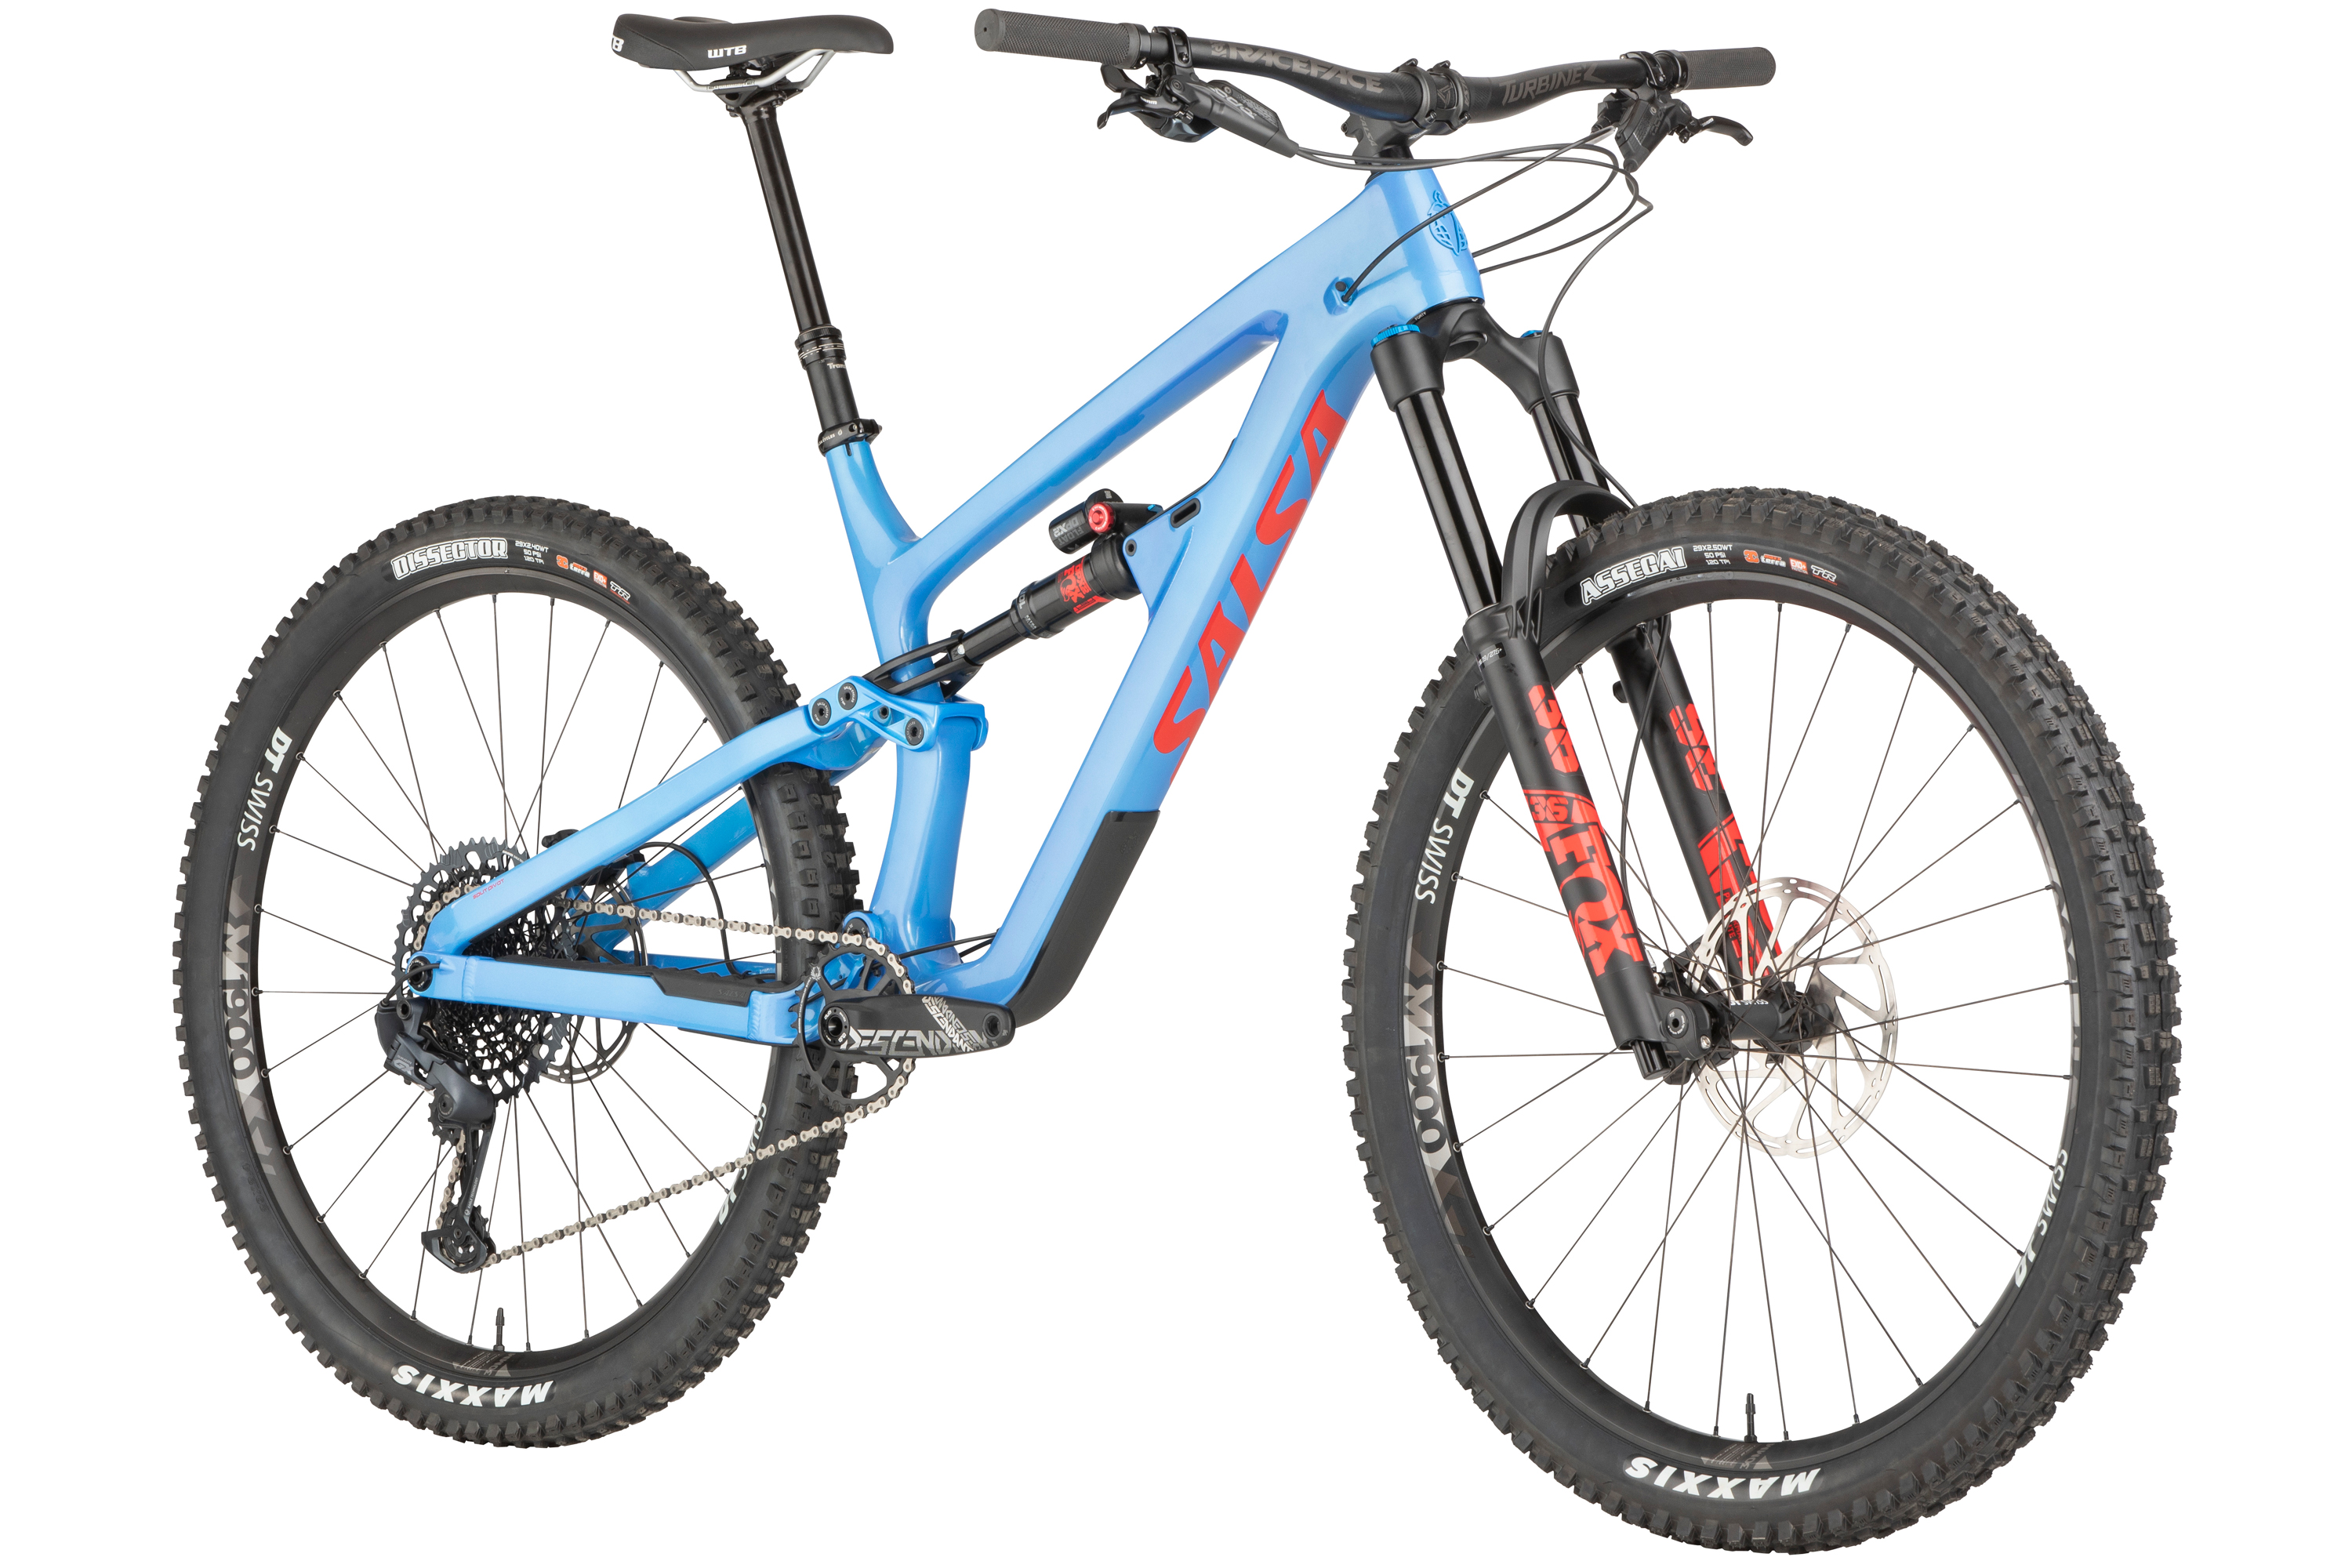 Salsa Blackthorn mountain bike